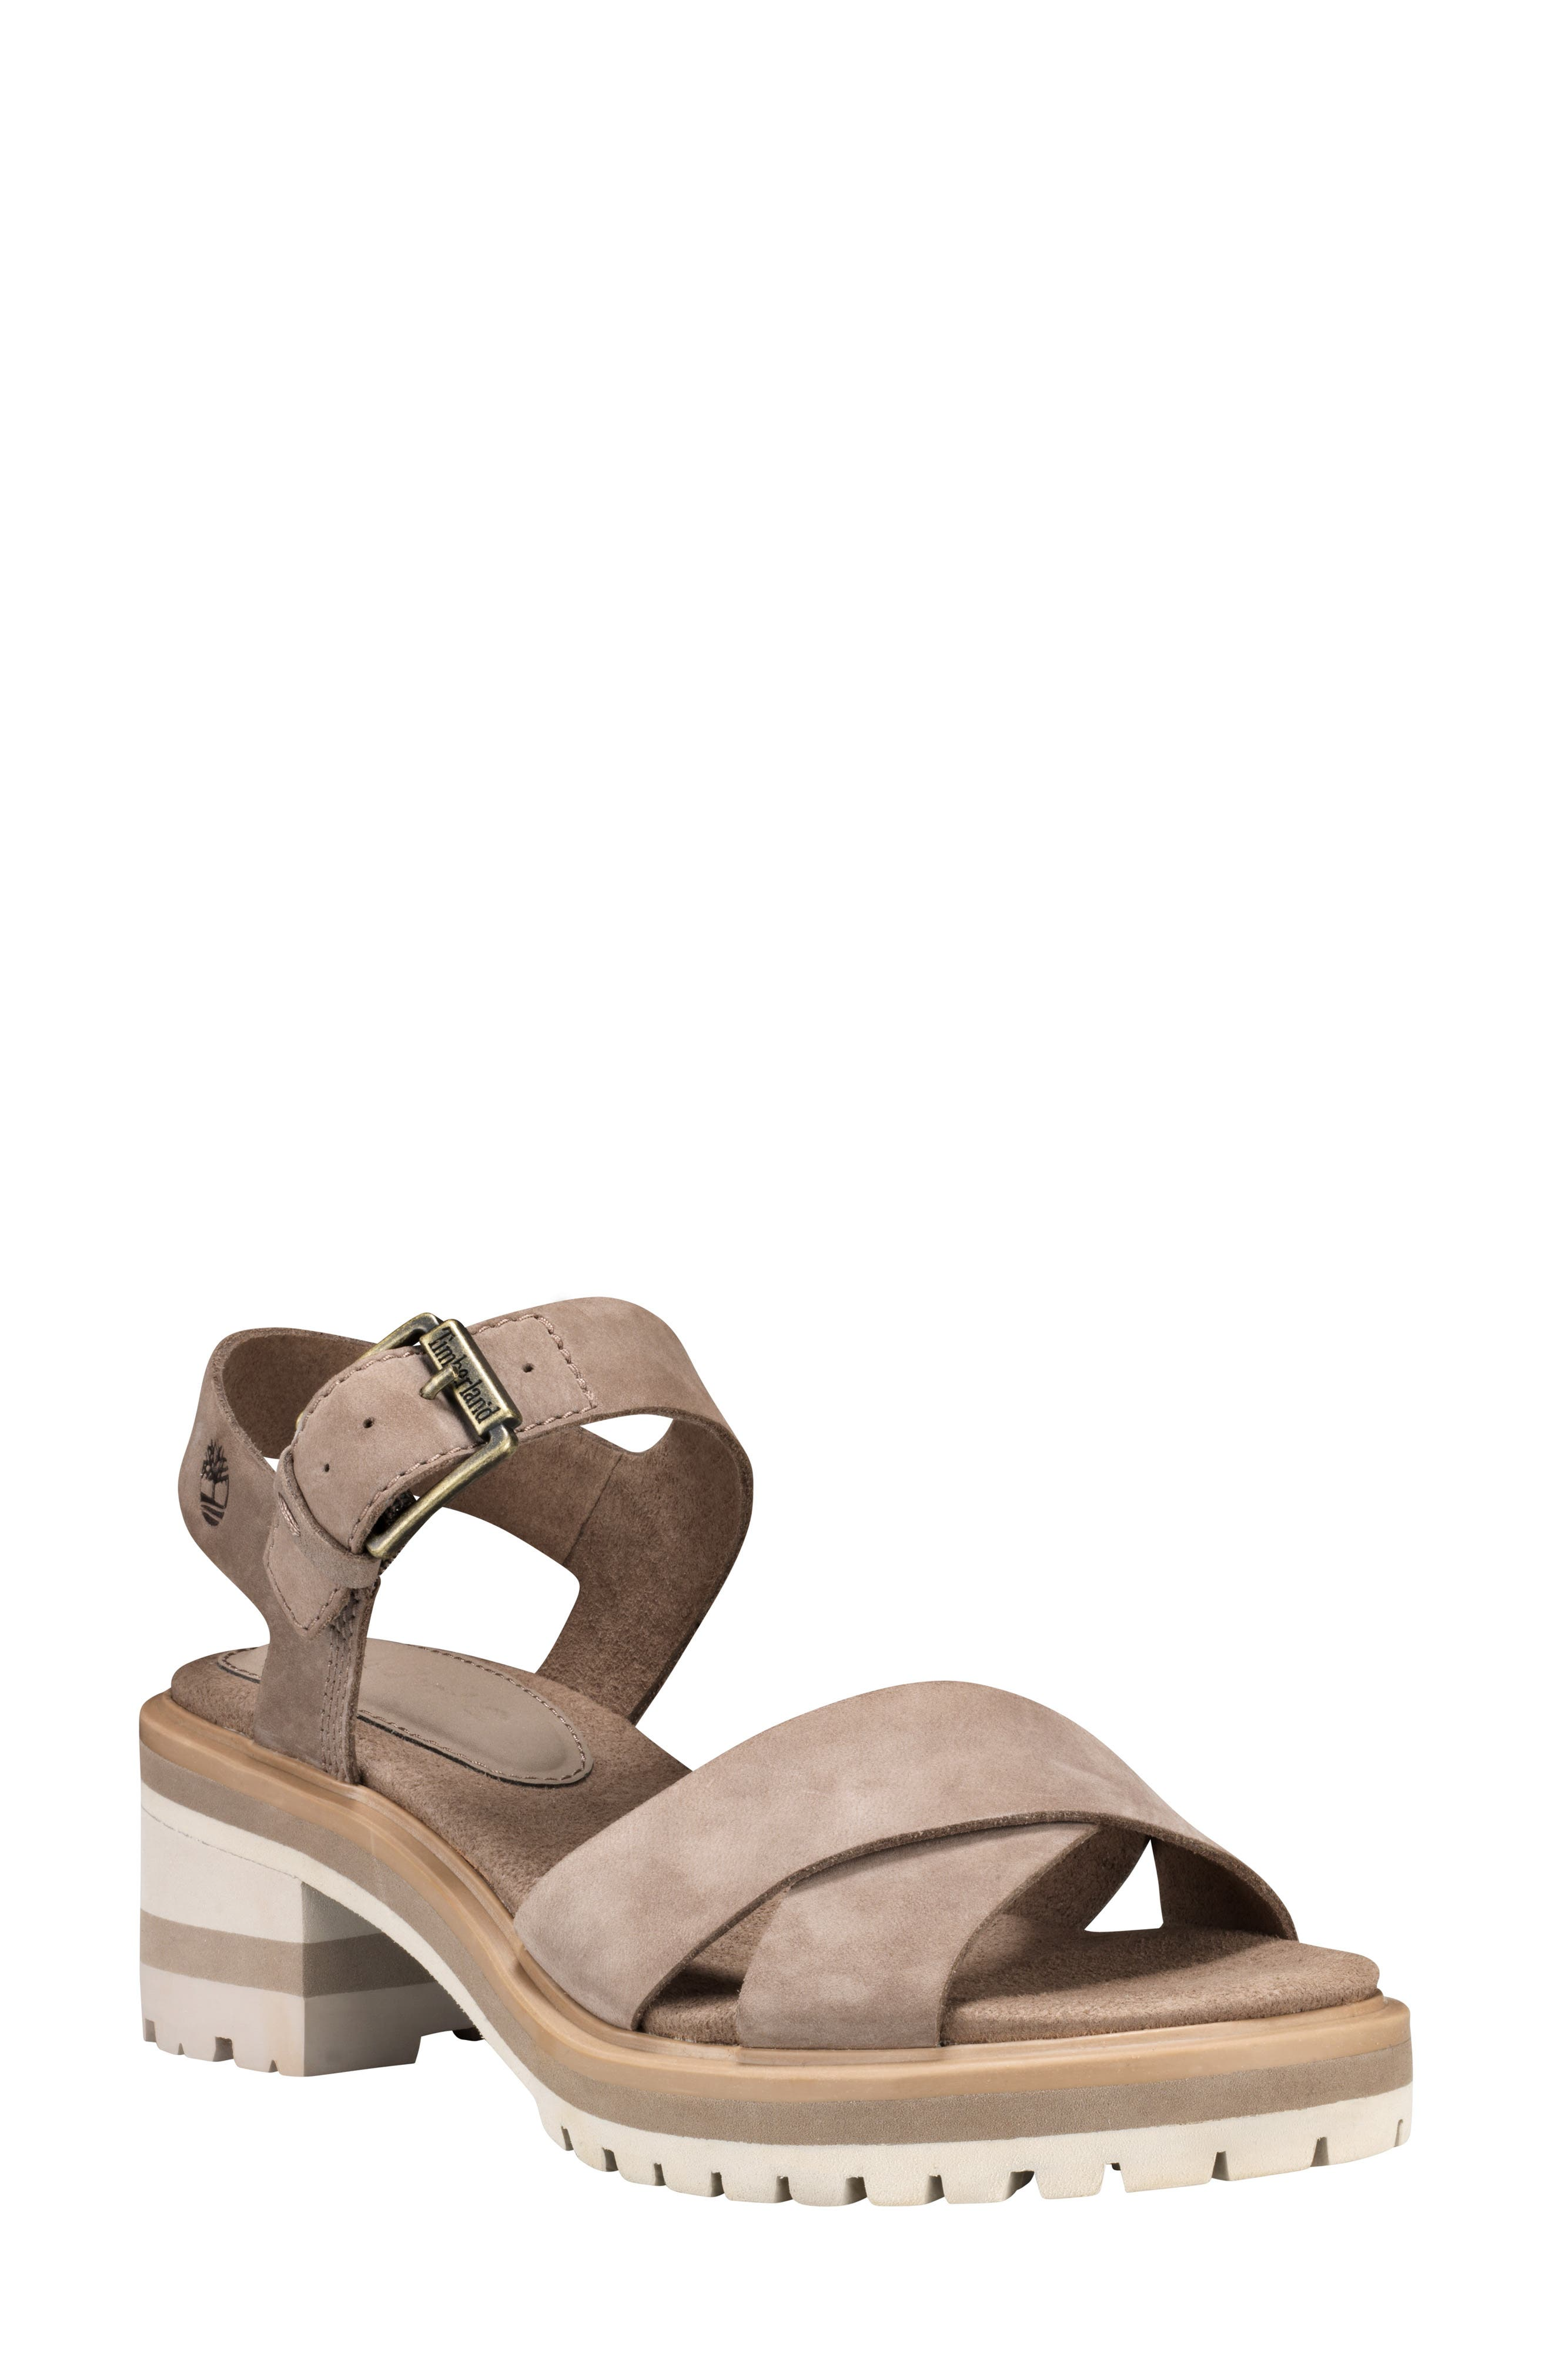 TIMBERLAND Violet March Crisscross Sandal, Main, color, TAUPE NUBUCK LEATHER